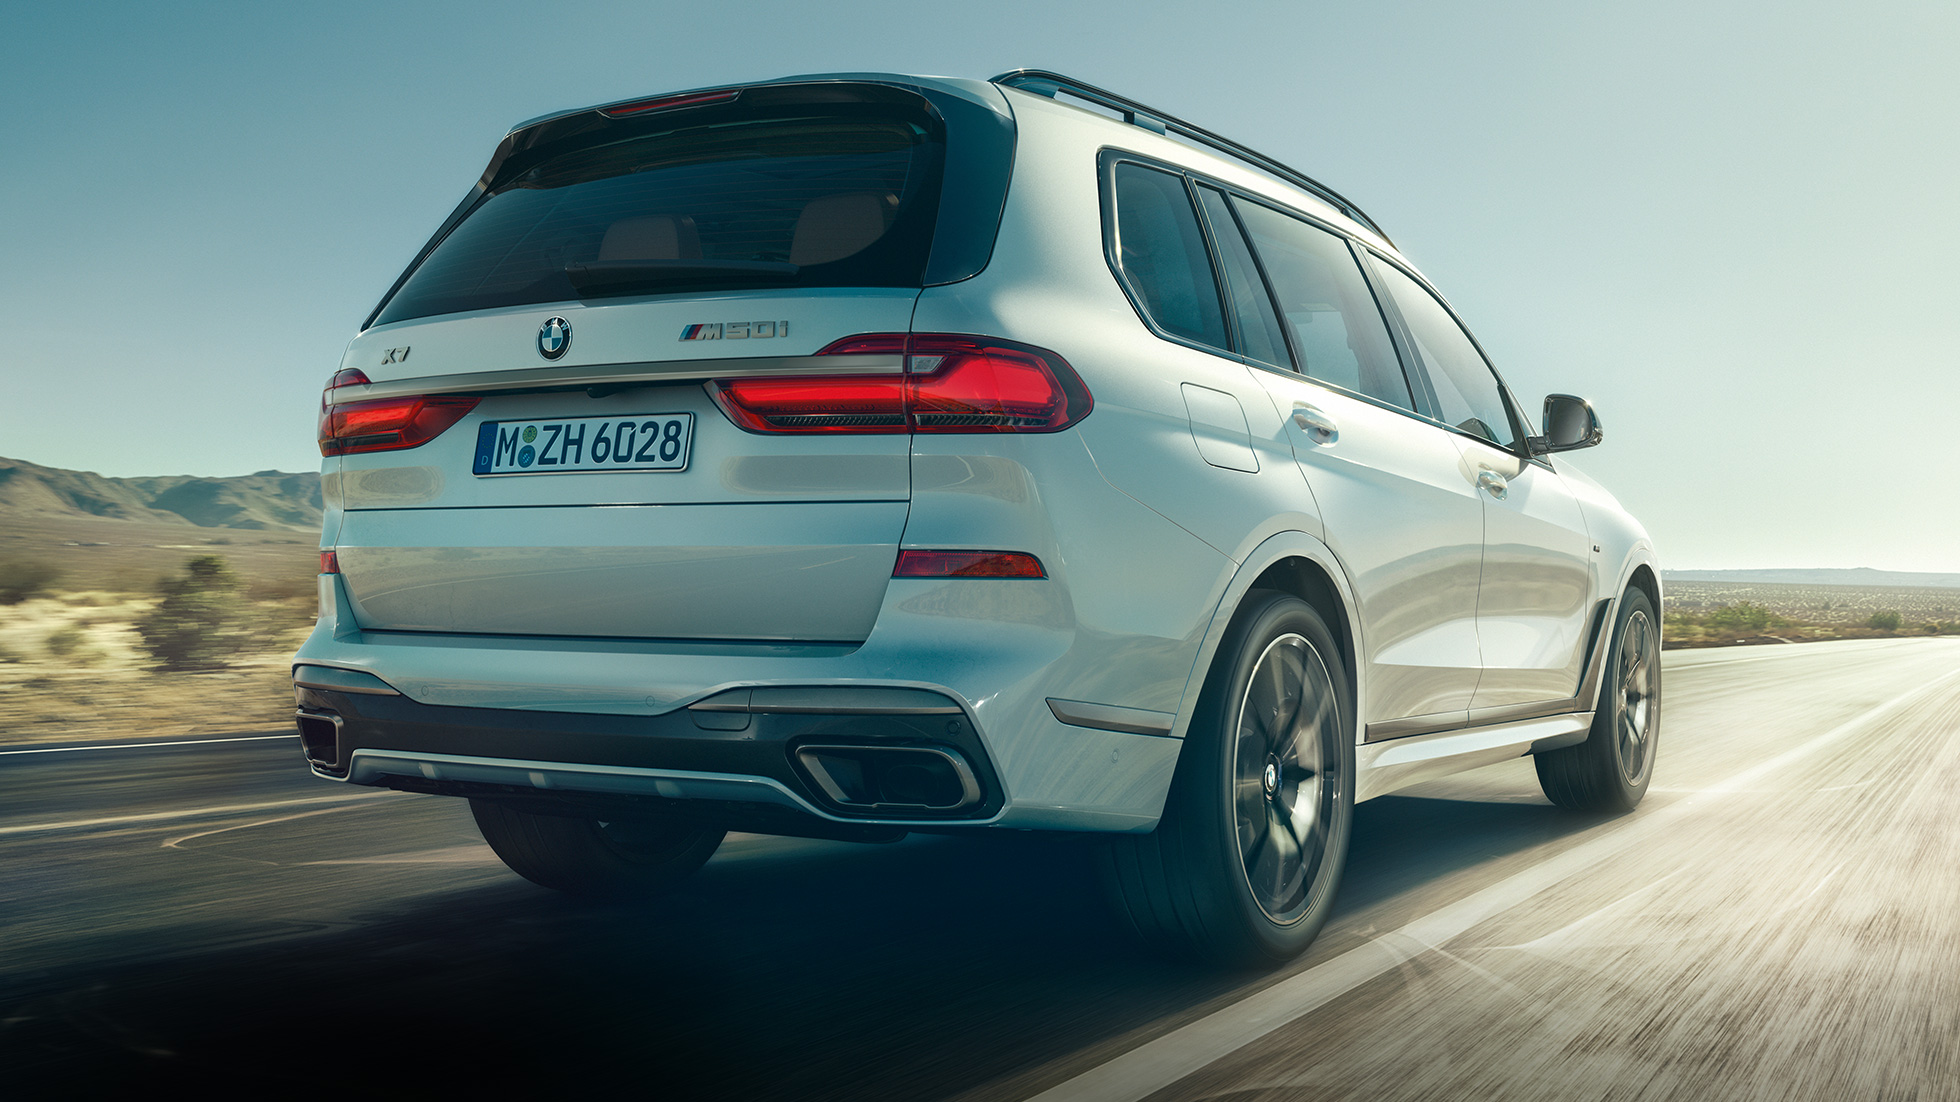 BMW X7 M50i in Mineral White, driving, rear view, G07, 2019